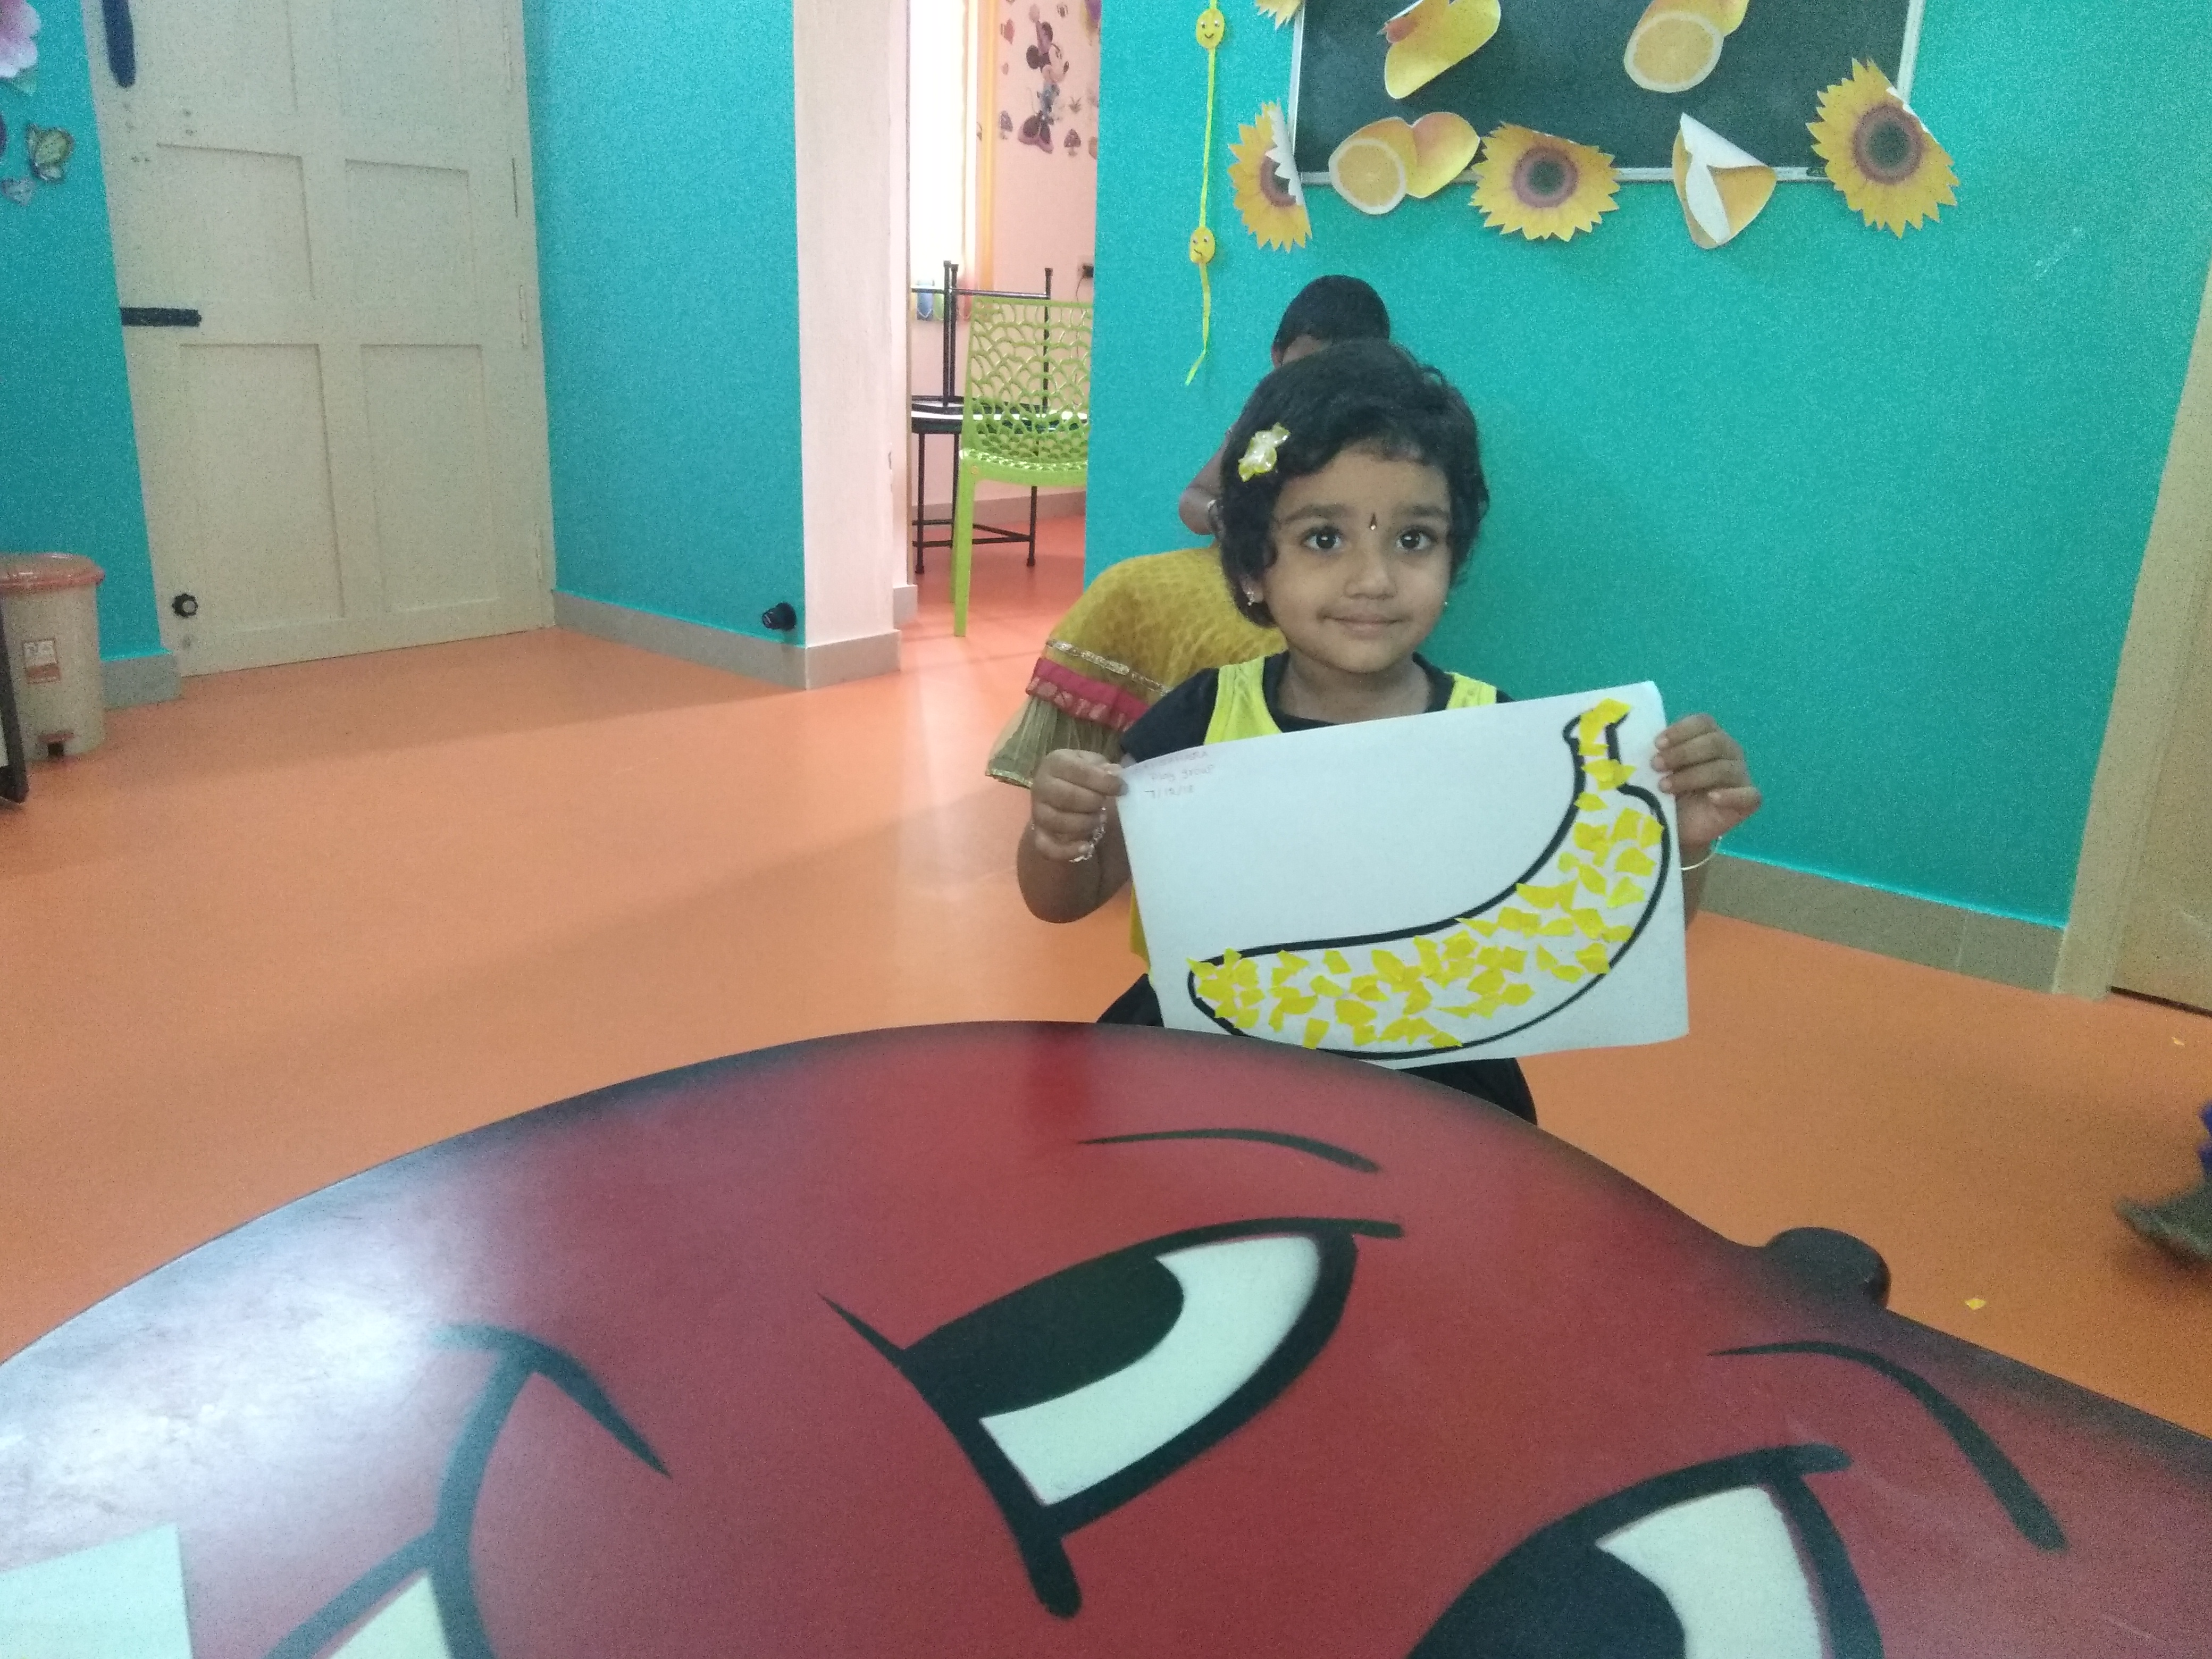 play school in vadavalli Coimbatore, kindergarten in vadavalli play school vadavalli, kindergarten in vadavalli Coimbatore, golden tulip school